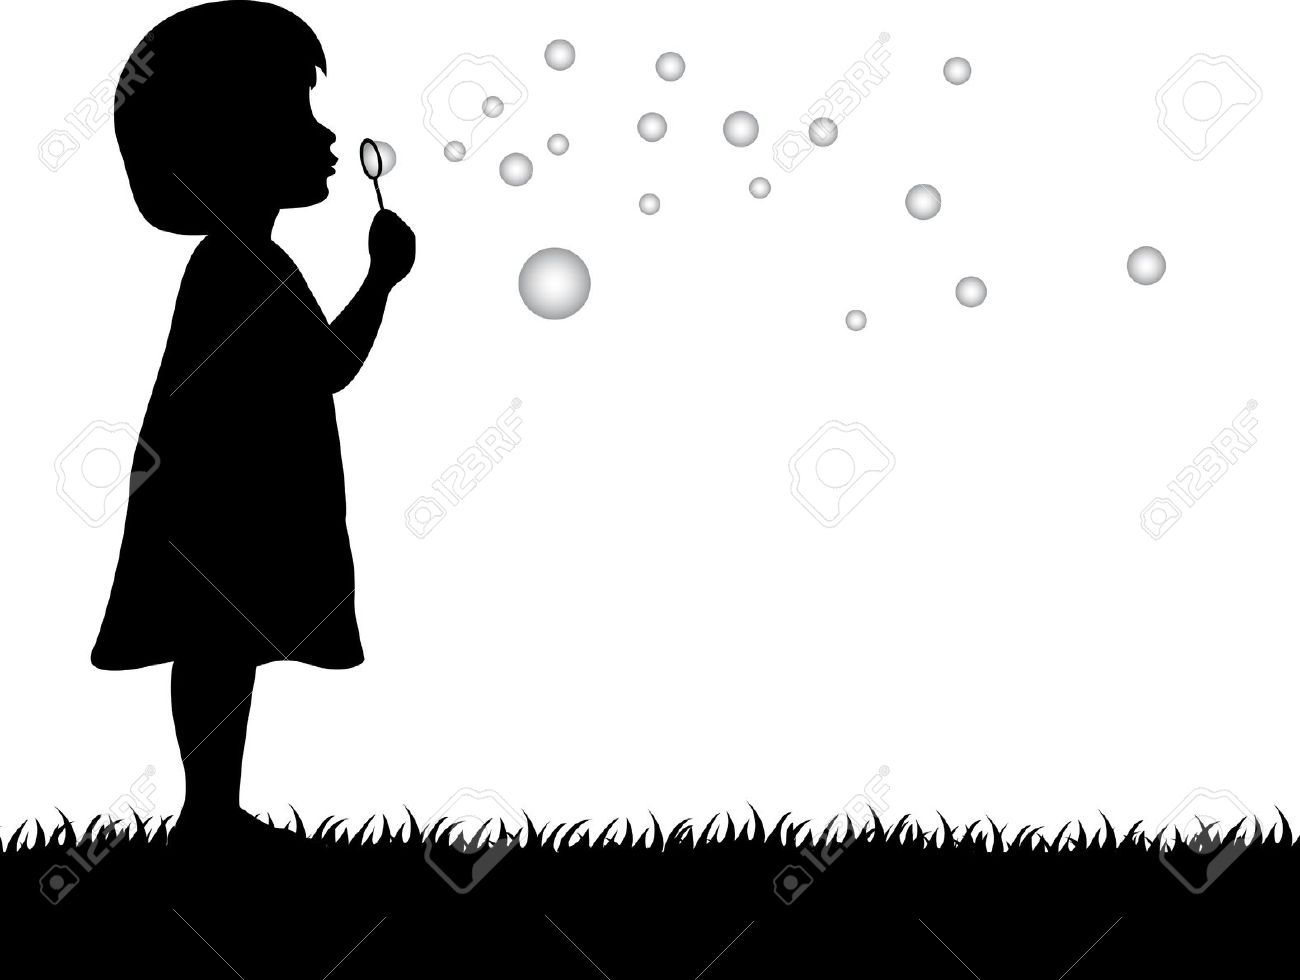 silhouette blow bubbles stock - Google Search | Tattoos ...